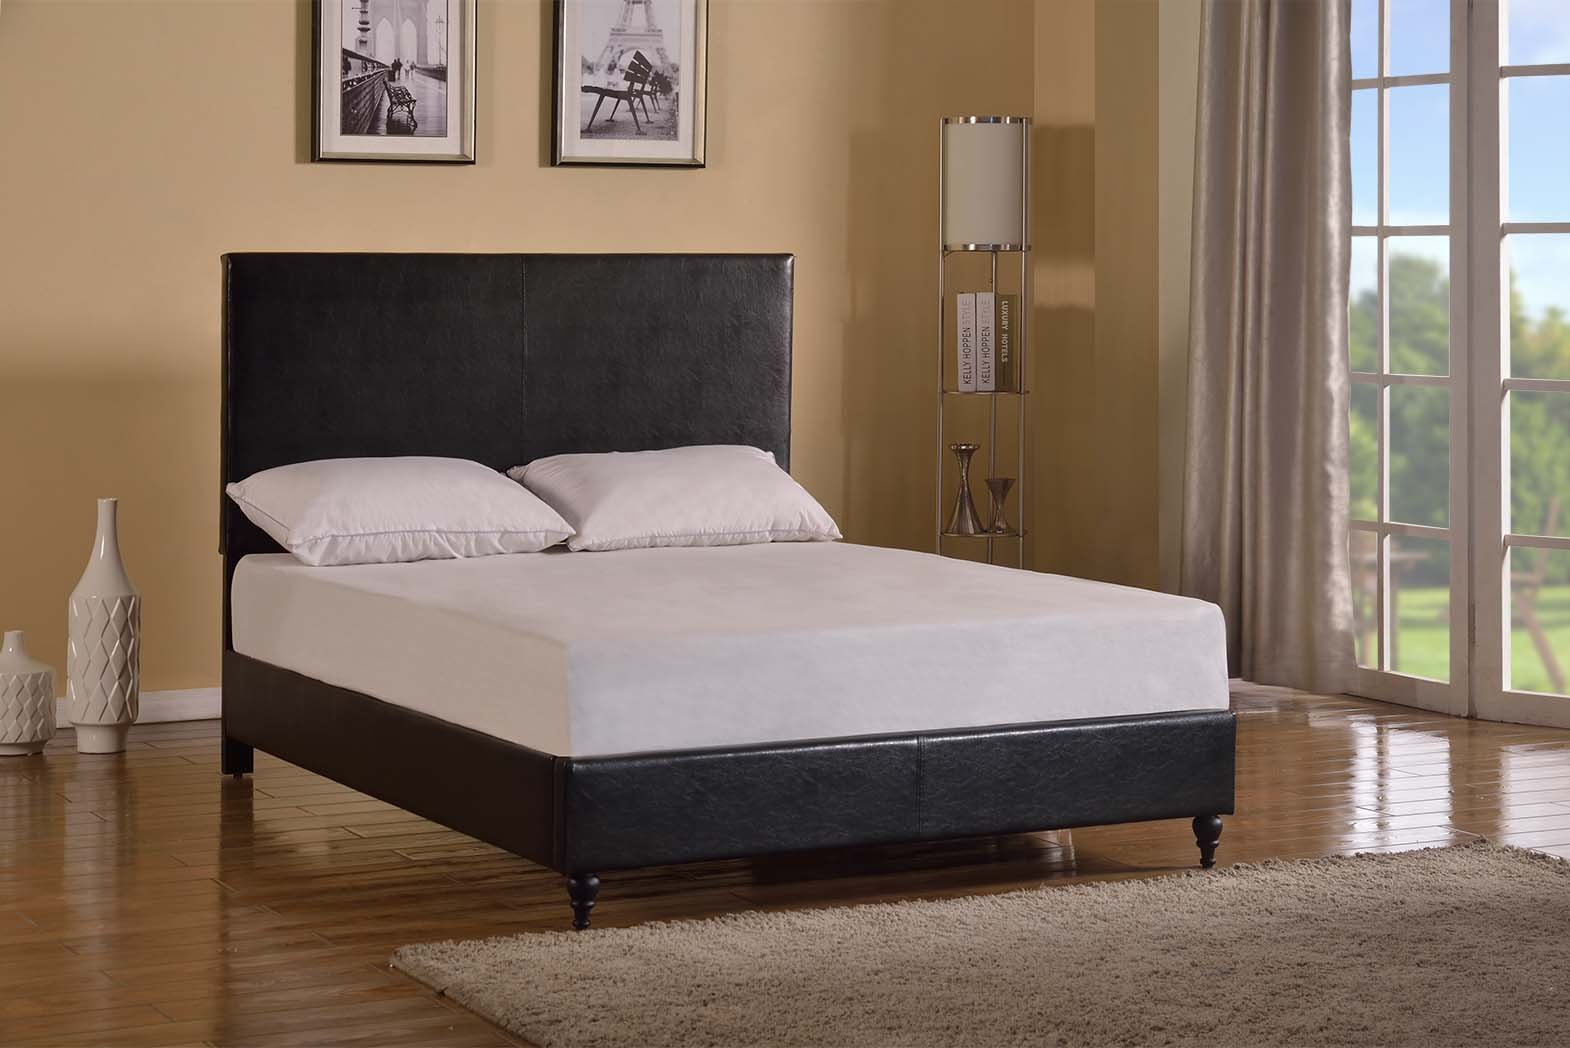 Home Life Black Leather 47'' Tall Headboard Platform Bed with Slats Queen - Complete Bed 5 Year Warranty Included by Home Life